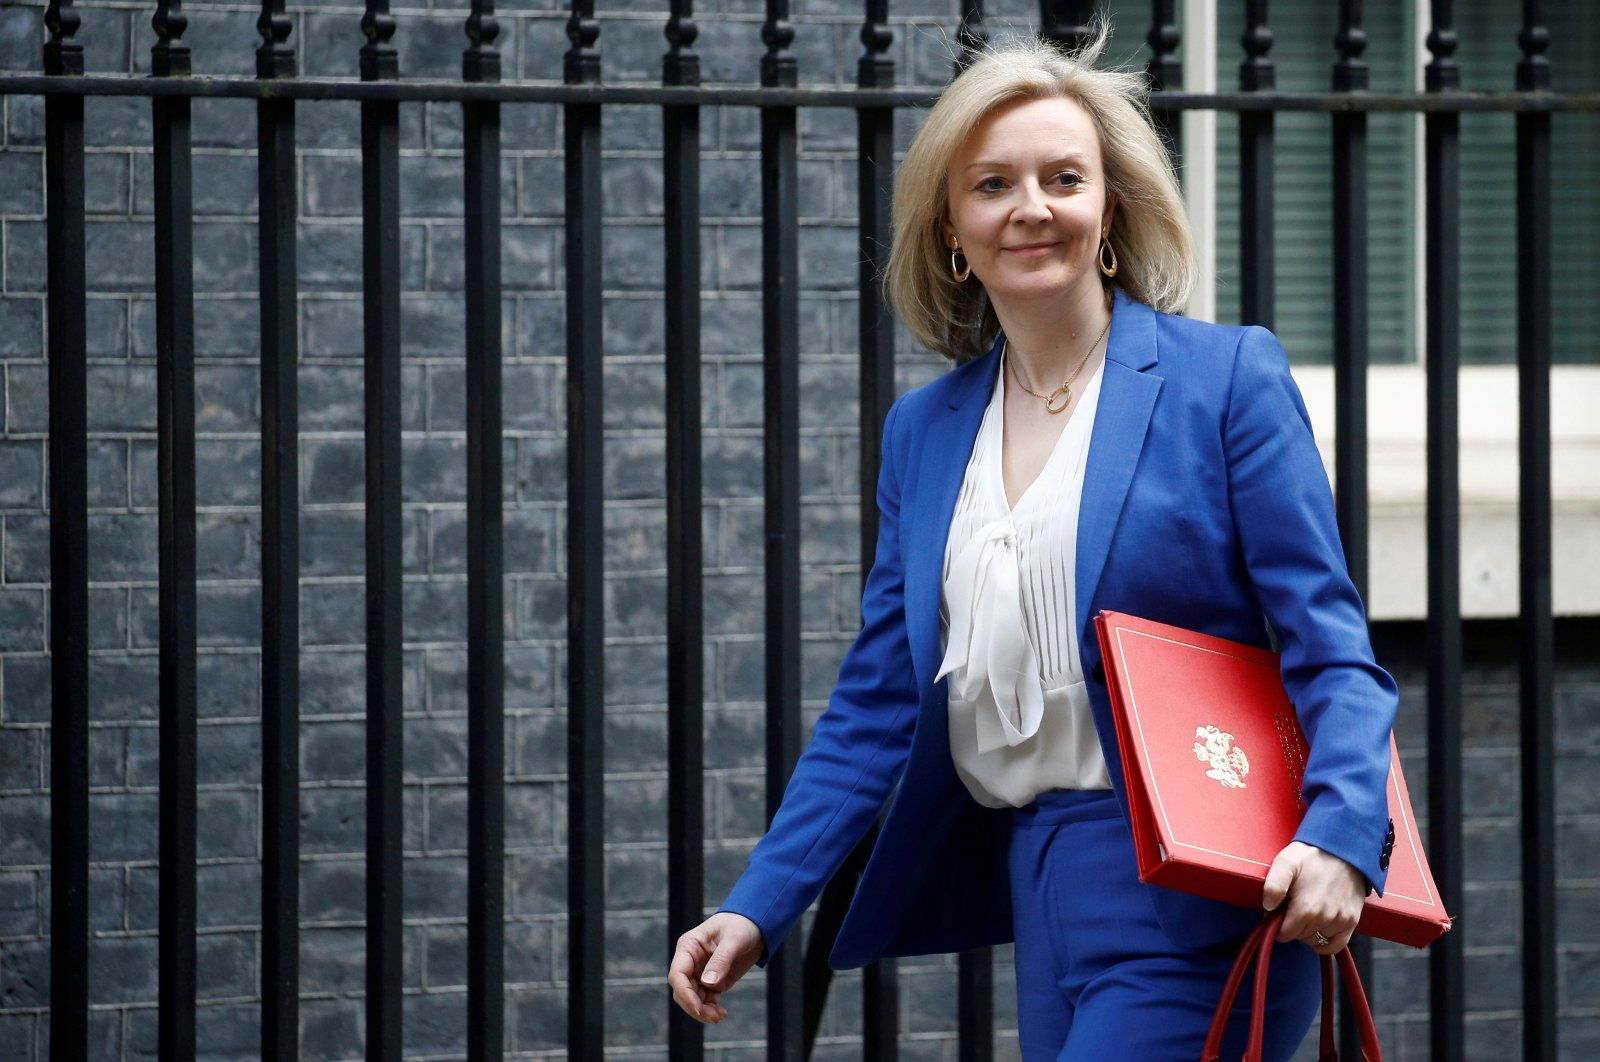 Britain's Secretary of State of International Trade and Minister for Women and Equalities Liz Truss is seen outside Downing Street, London, Britain, March 17, 2020. (Reuters Photo)